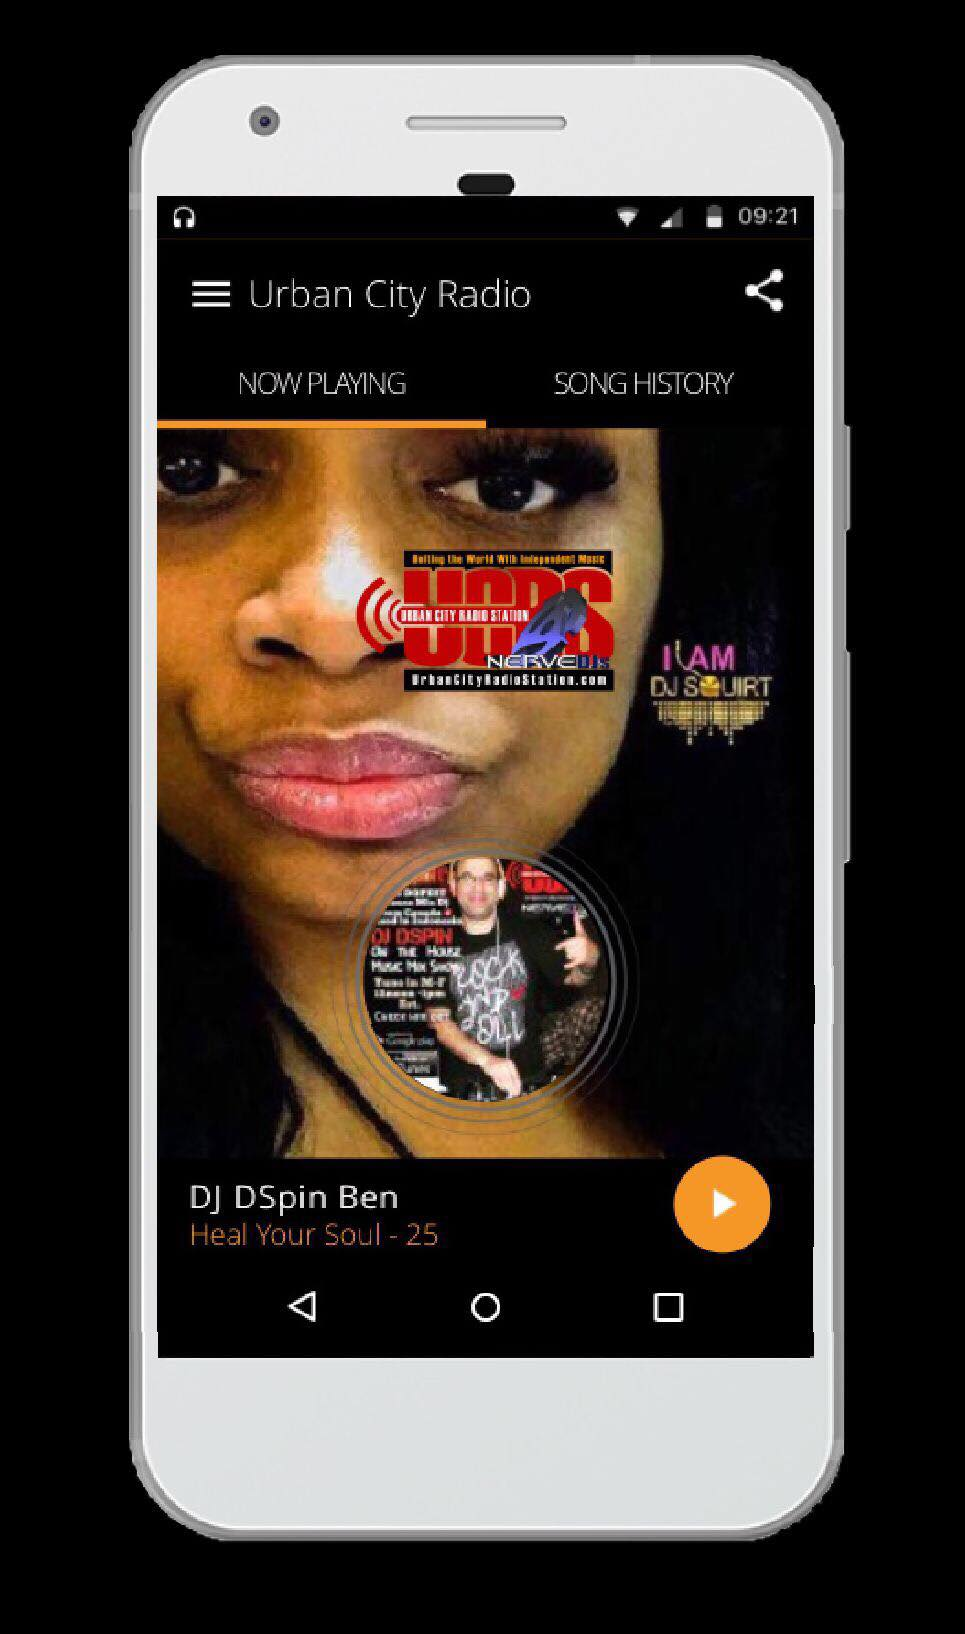 DOWNLOAD ON GOOGLE PLAY - LISTEN NOW